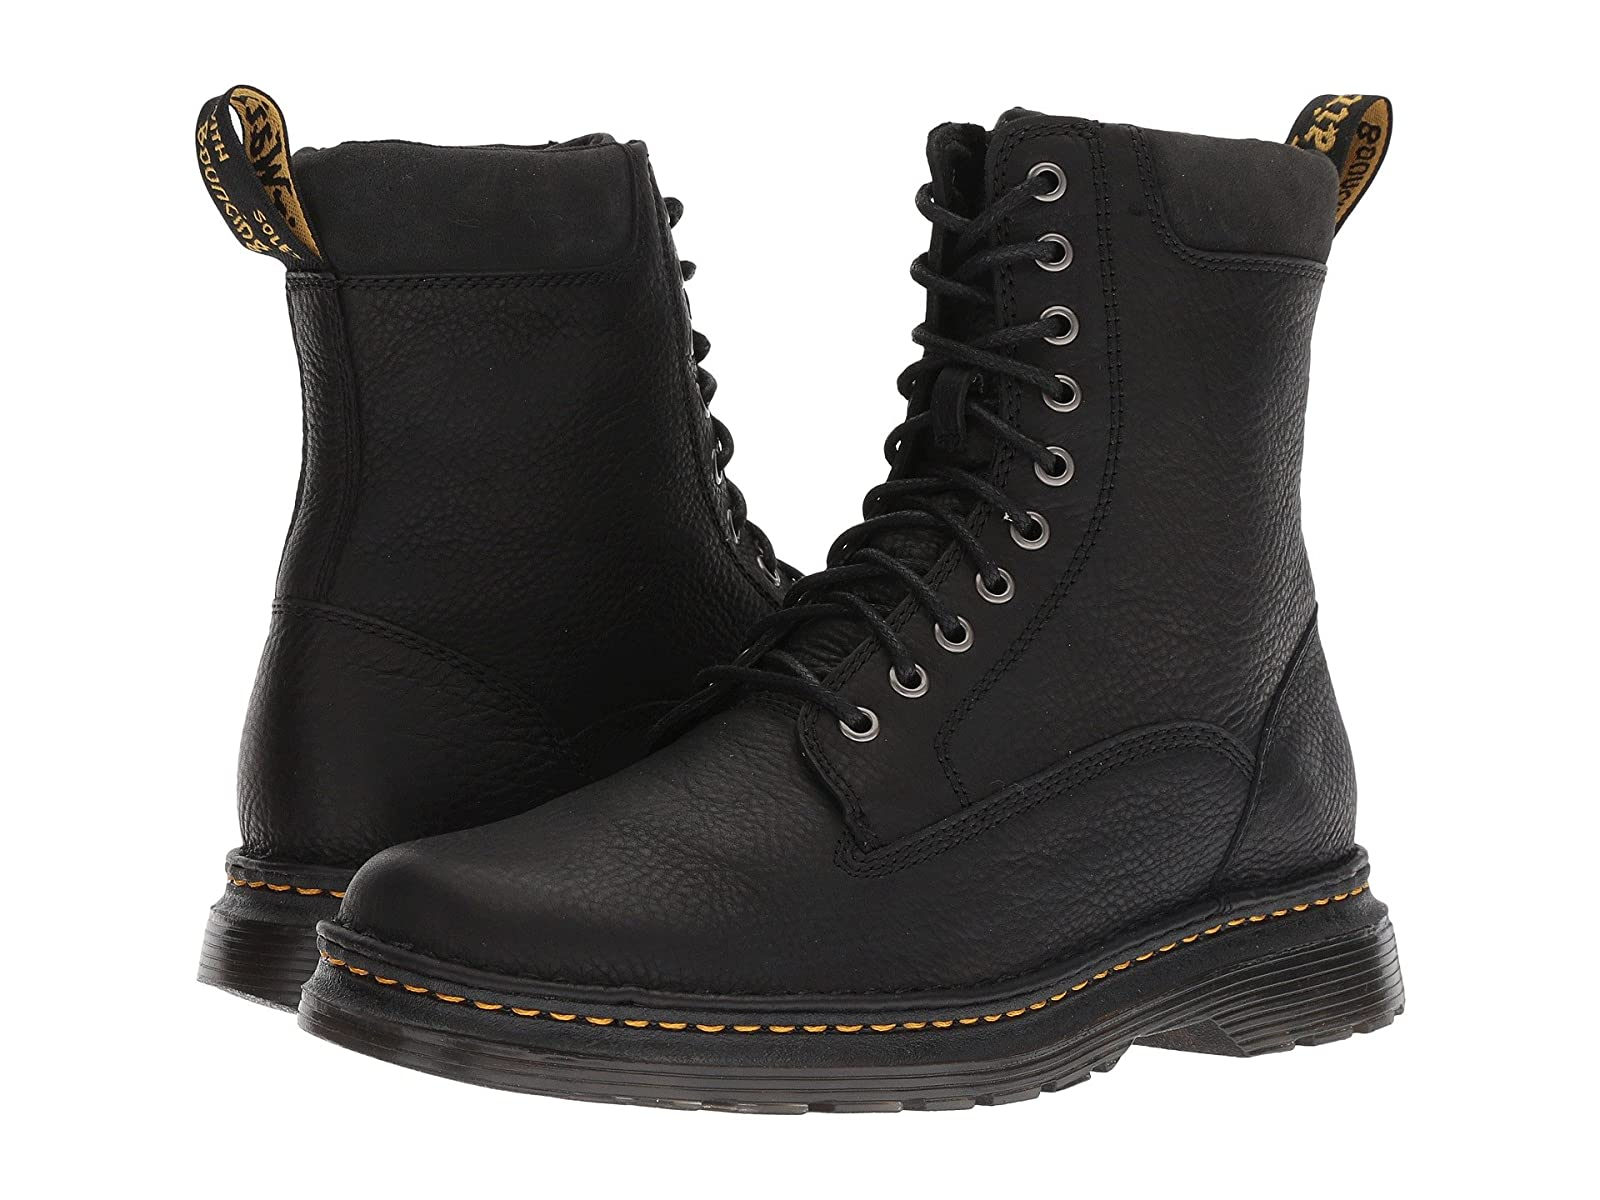 Dr. Martens Vincent RobsonAffordable and distinctive shoes